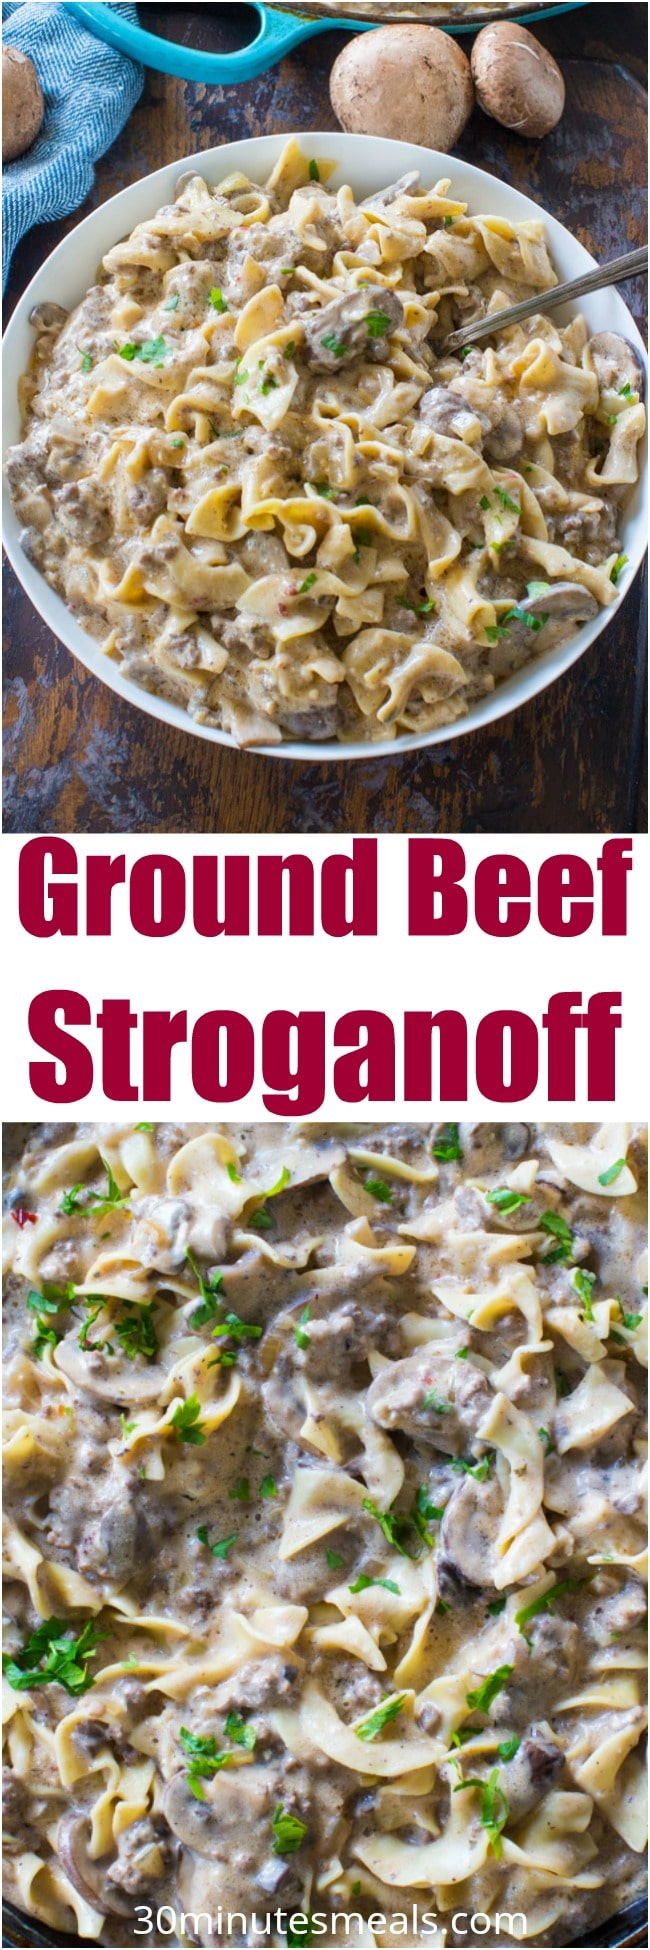 Easy Ground Beef Stroganoff is so unbelievably creamy thanks to a few secret ingredients. Easy to make, in just 30 minutes you have an amazing dinner!